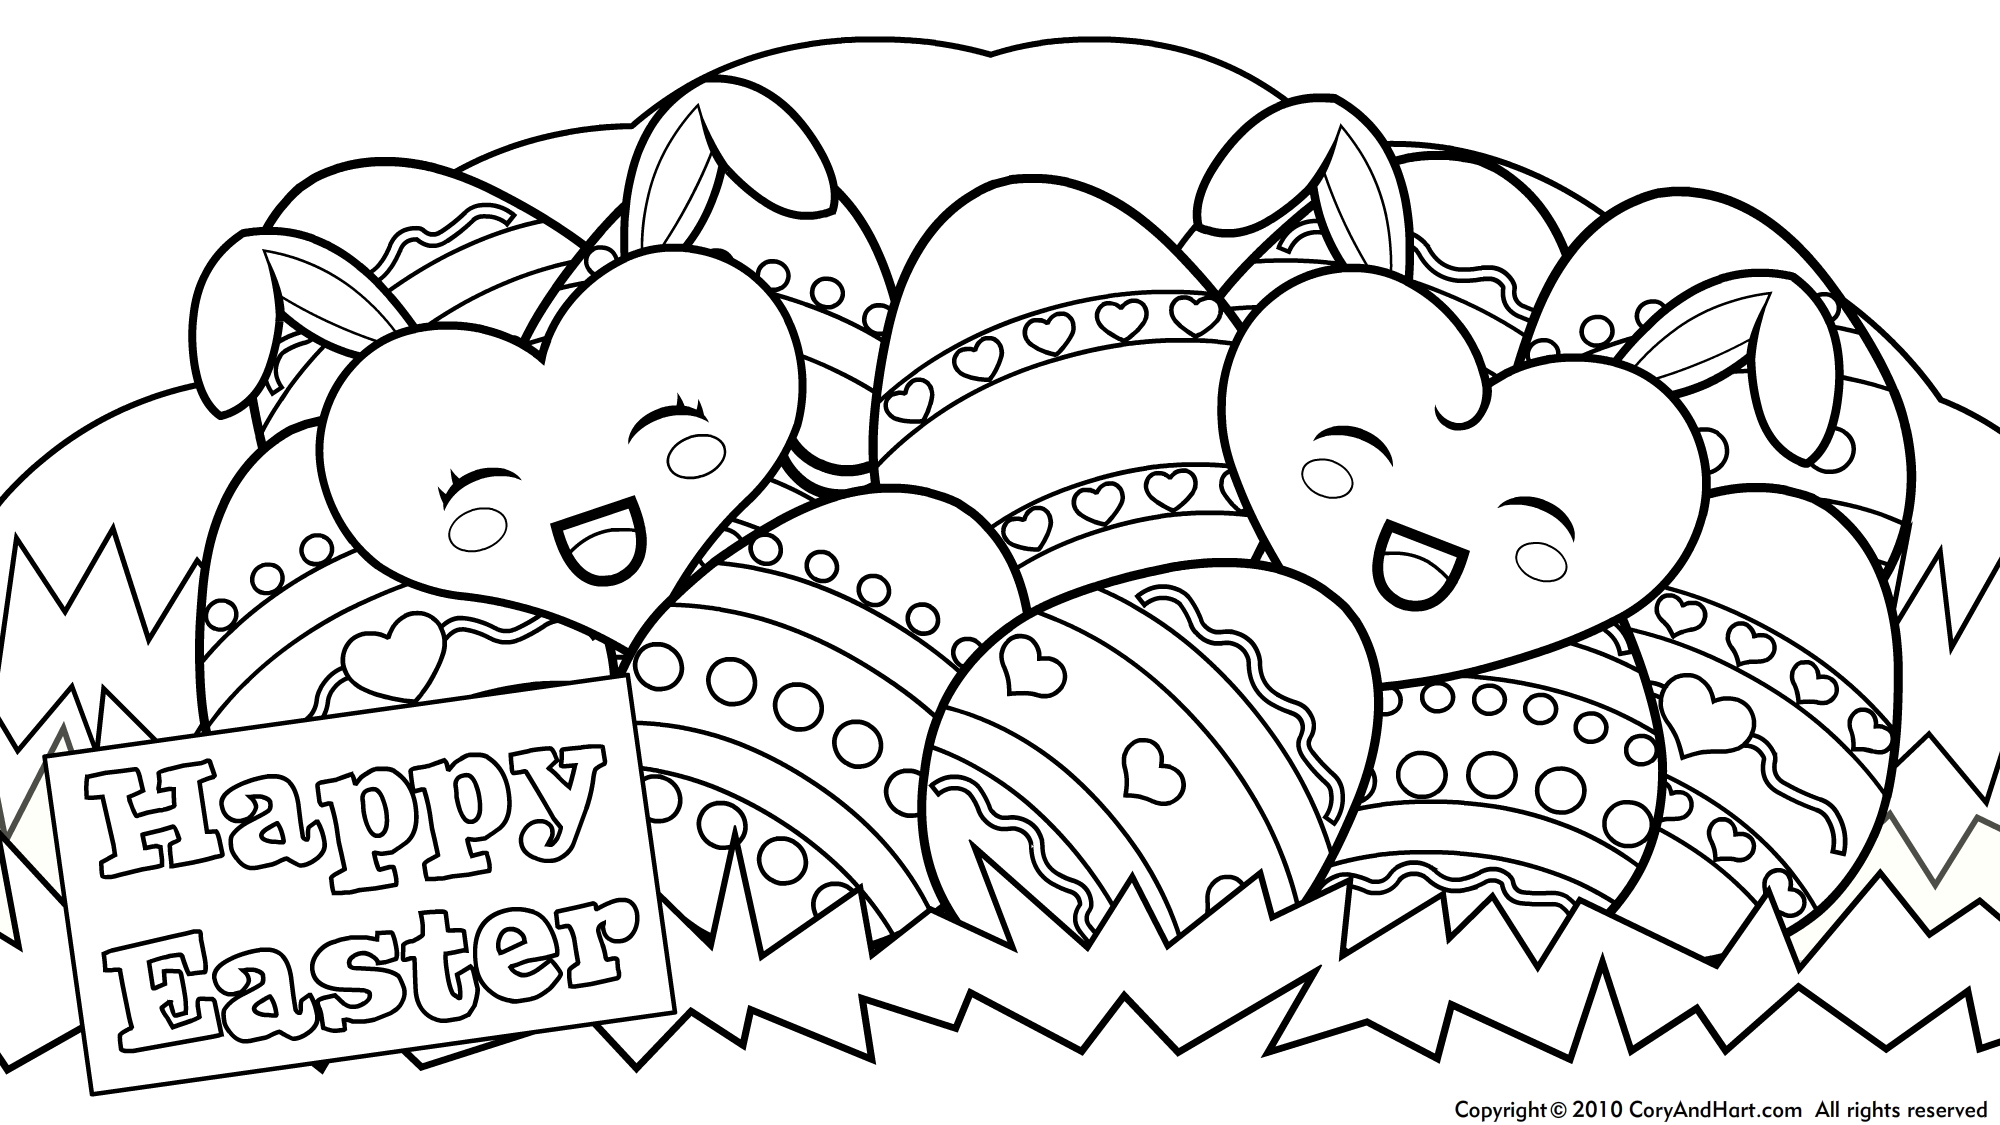 Happy Easter Coloring Pages - Free Large Images | Fun Stuff For Kids - Coloring Pages Free Printable Easter